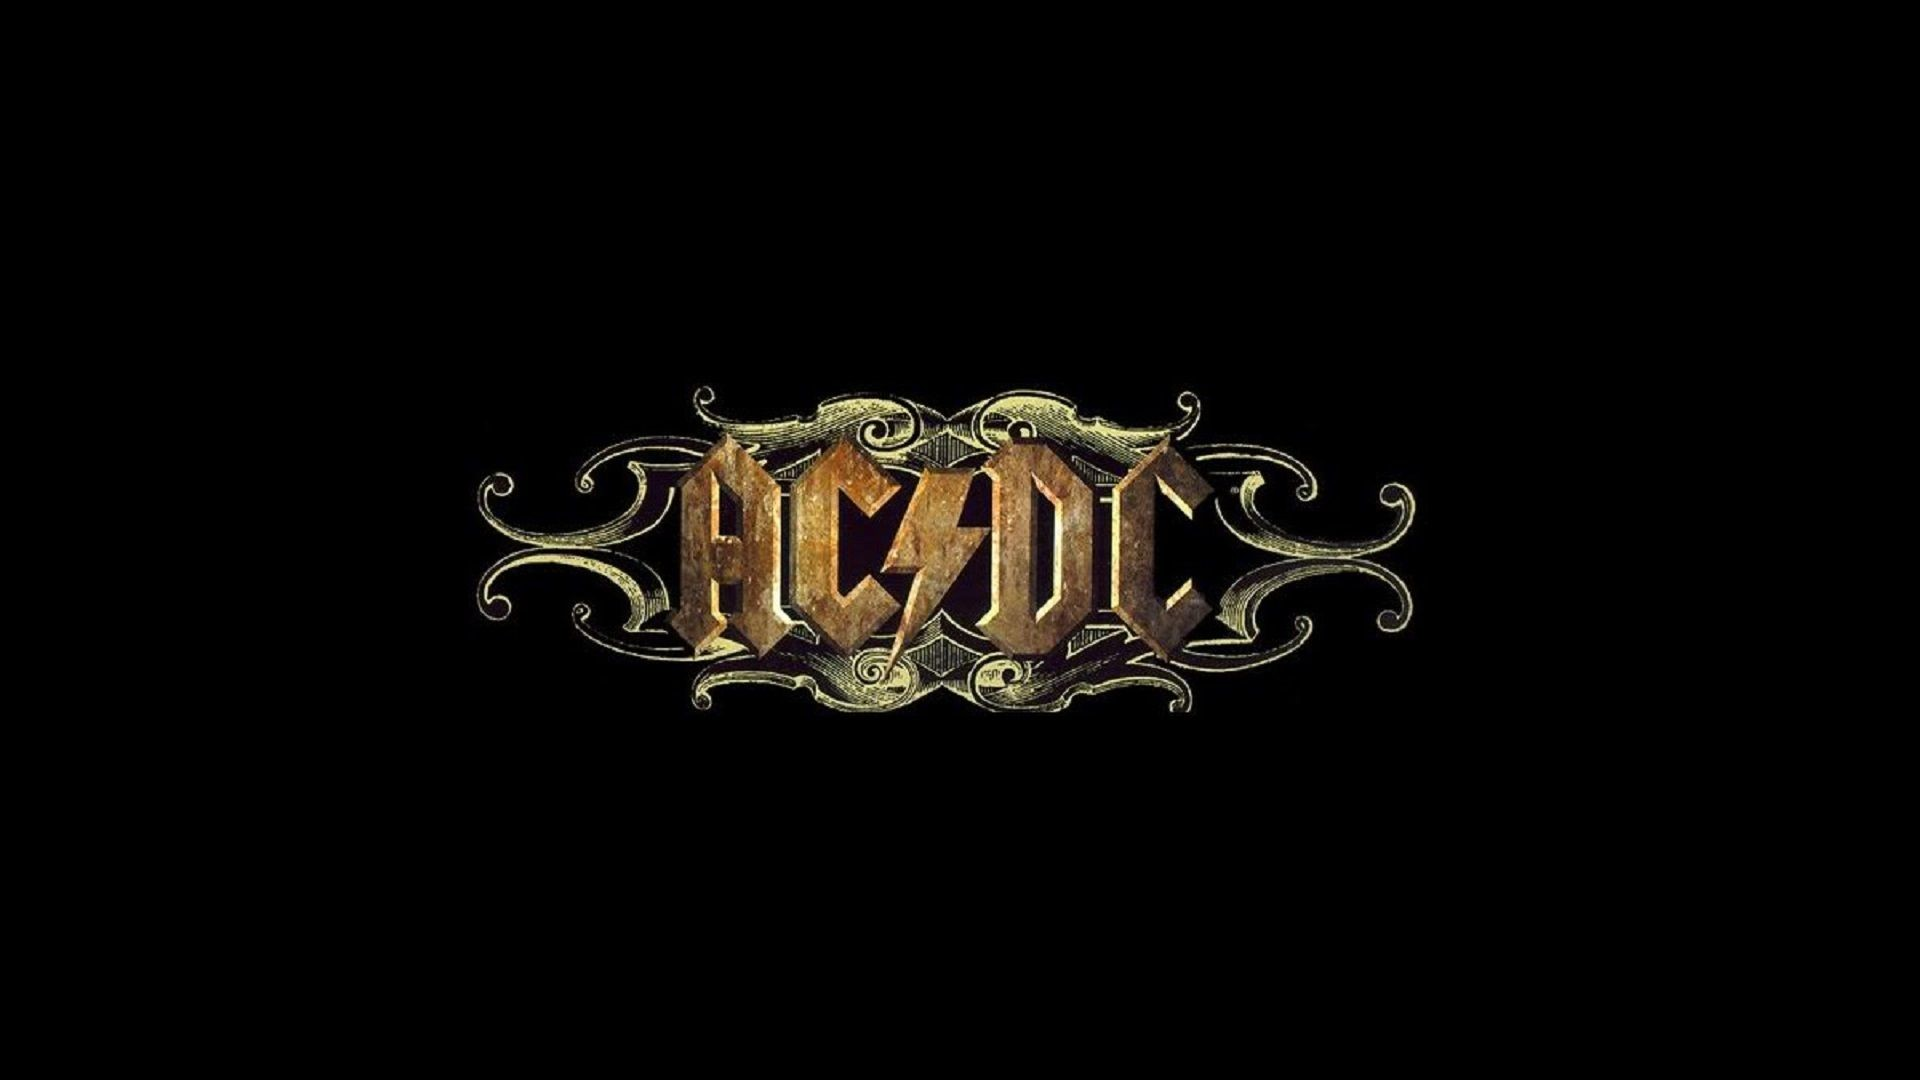 Res: 1920x1080, ACDC - Wallpaper (1366x768)